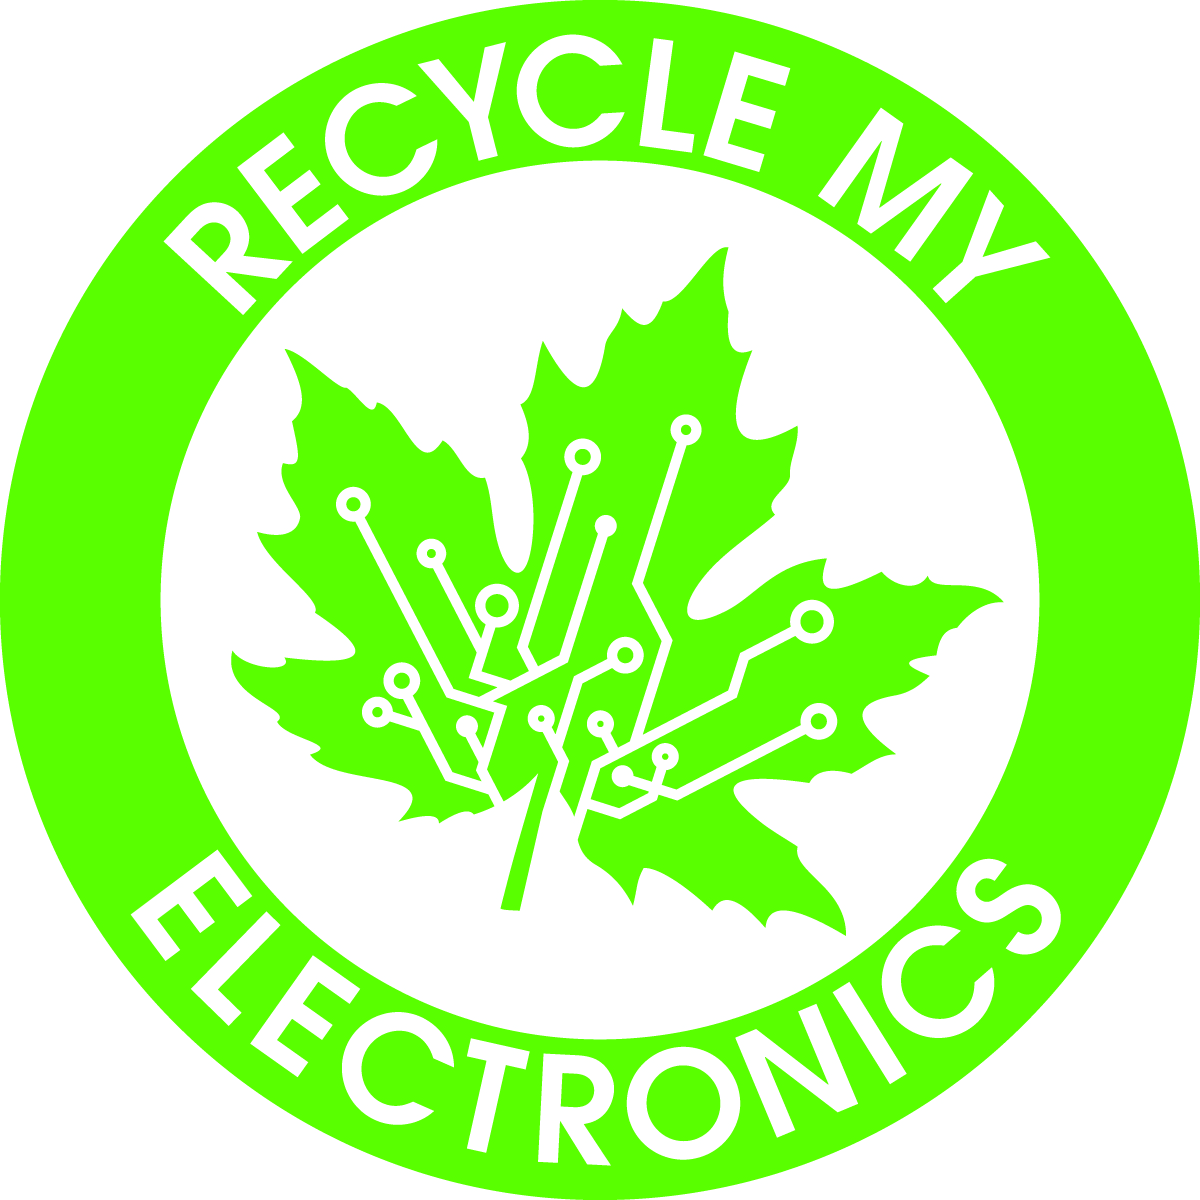 Slices For Devices Pizza We Recycle The Following Electronics And Much More Information